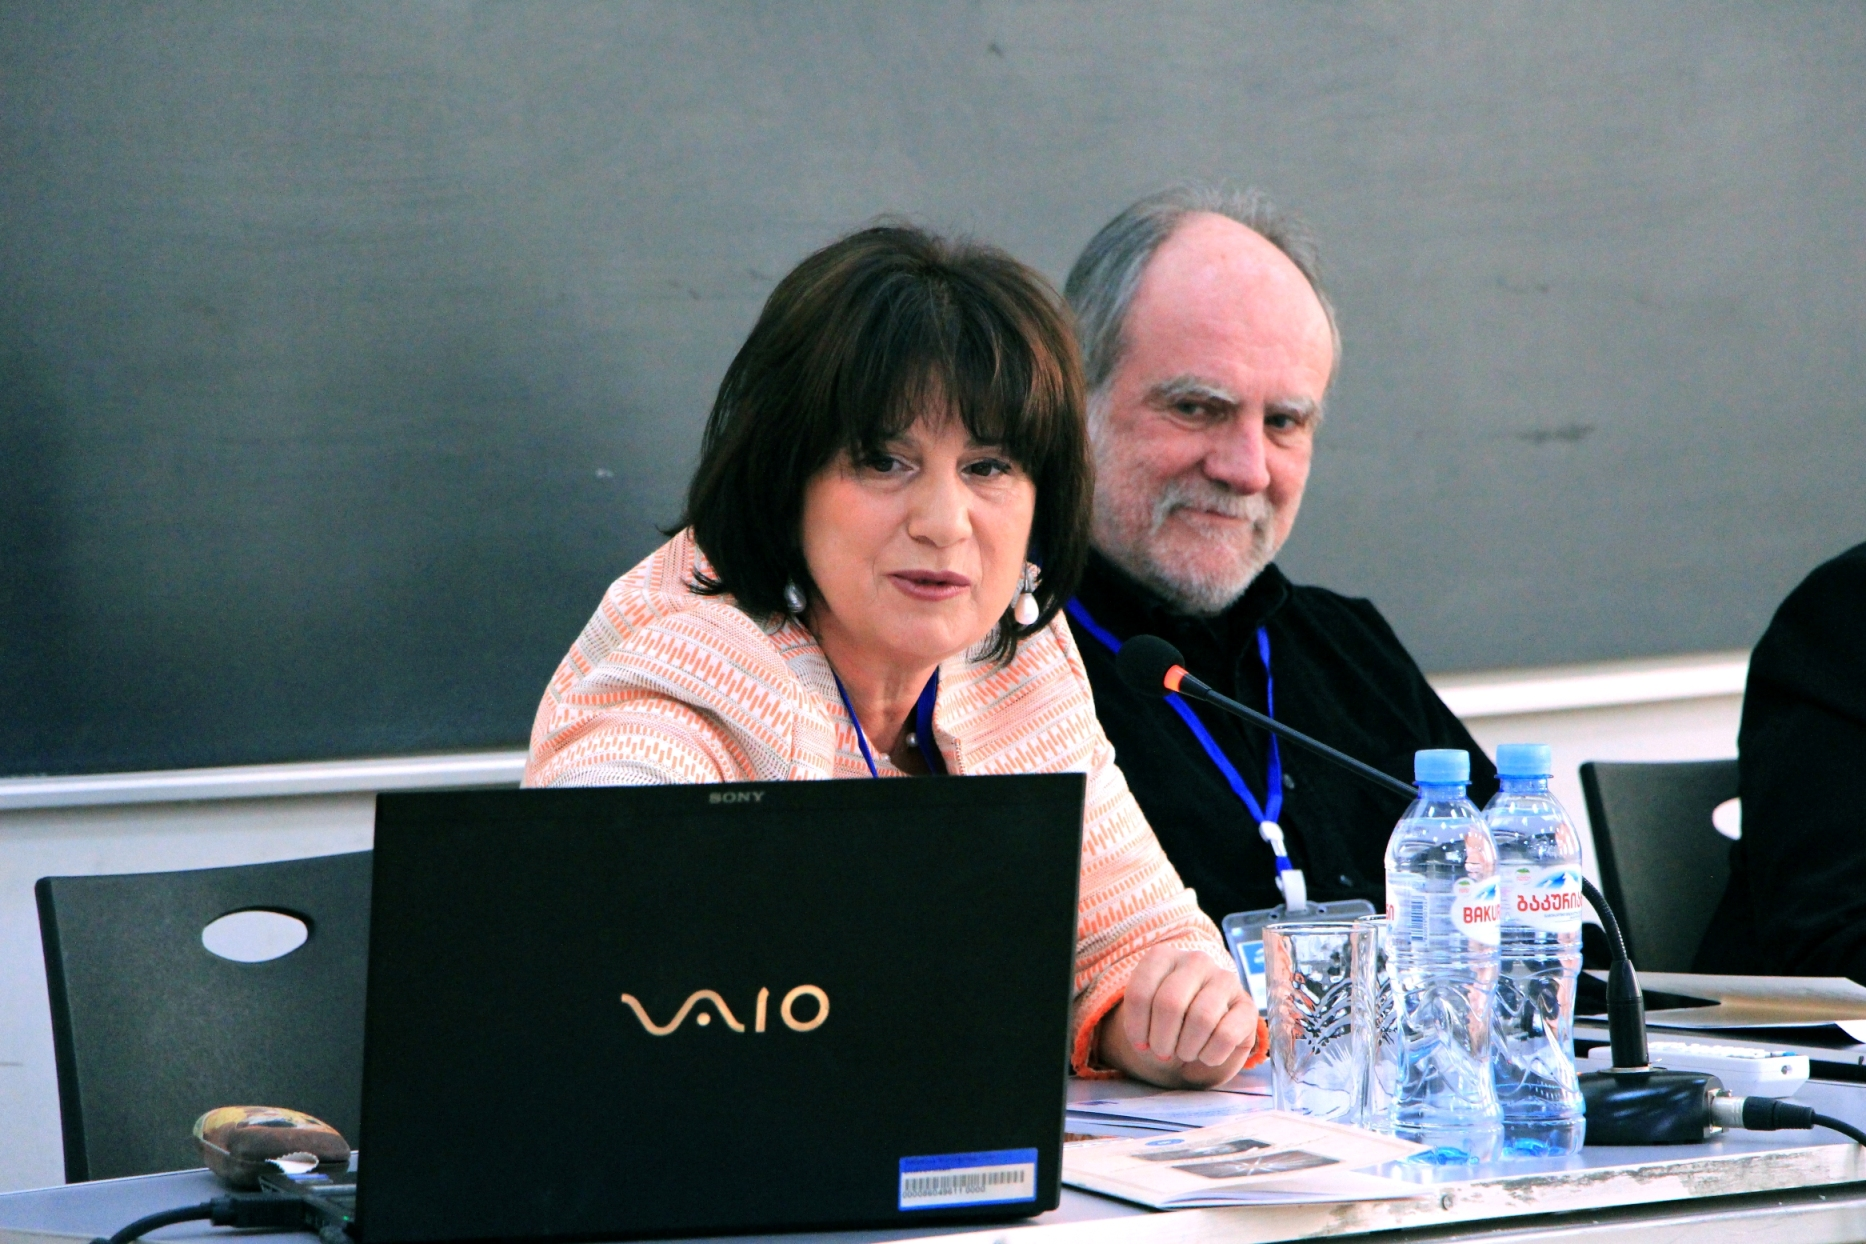 a-IMG_9128.